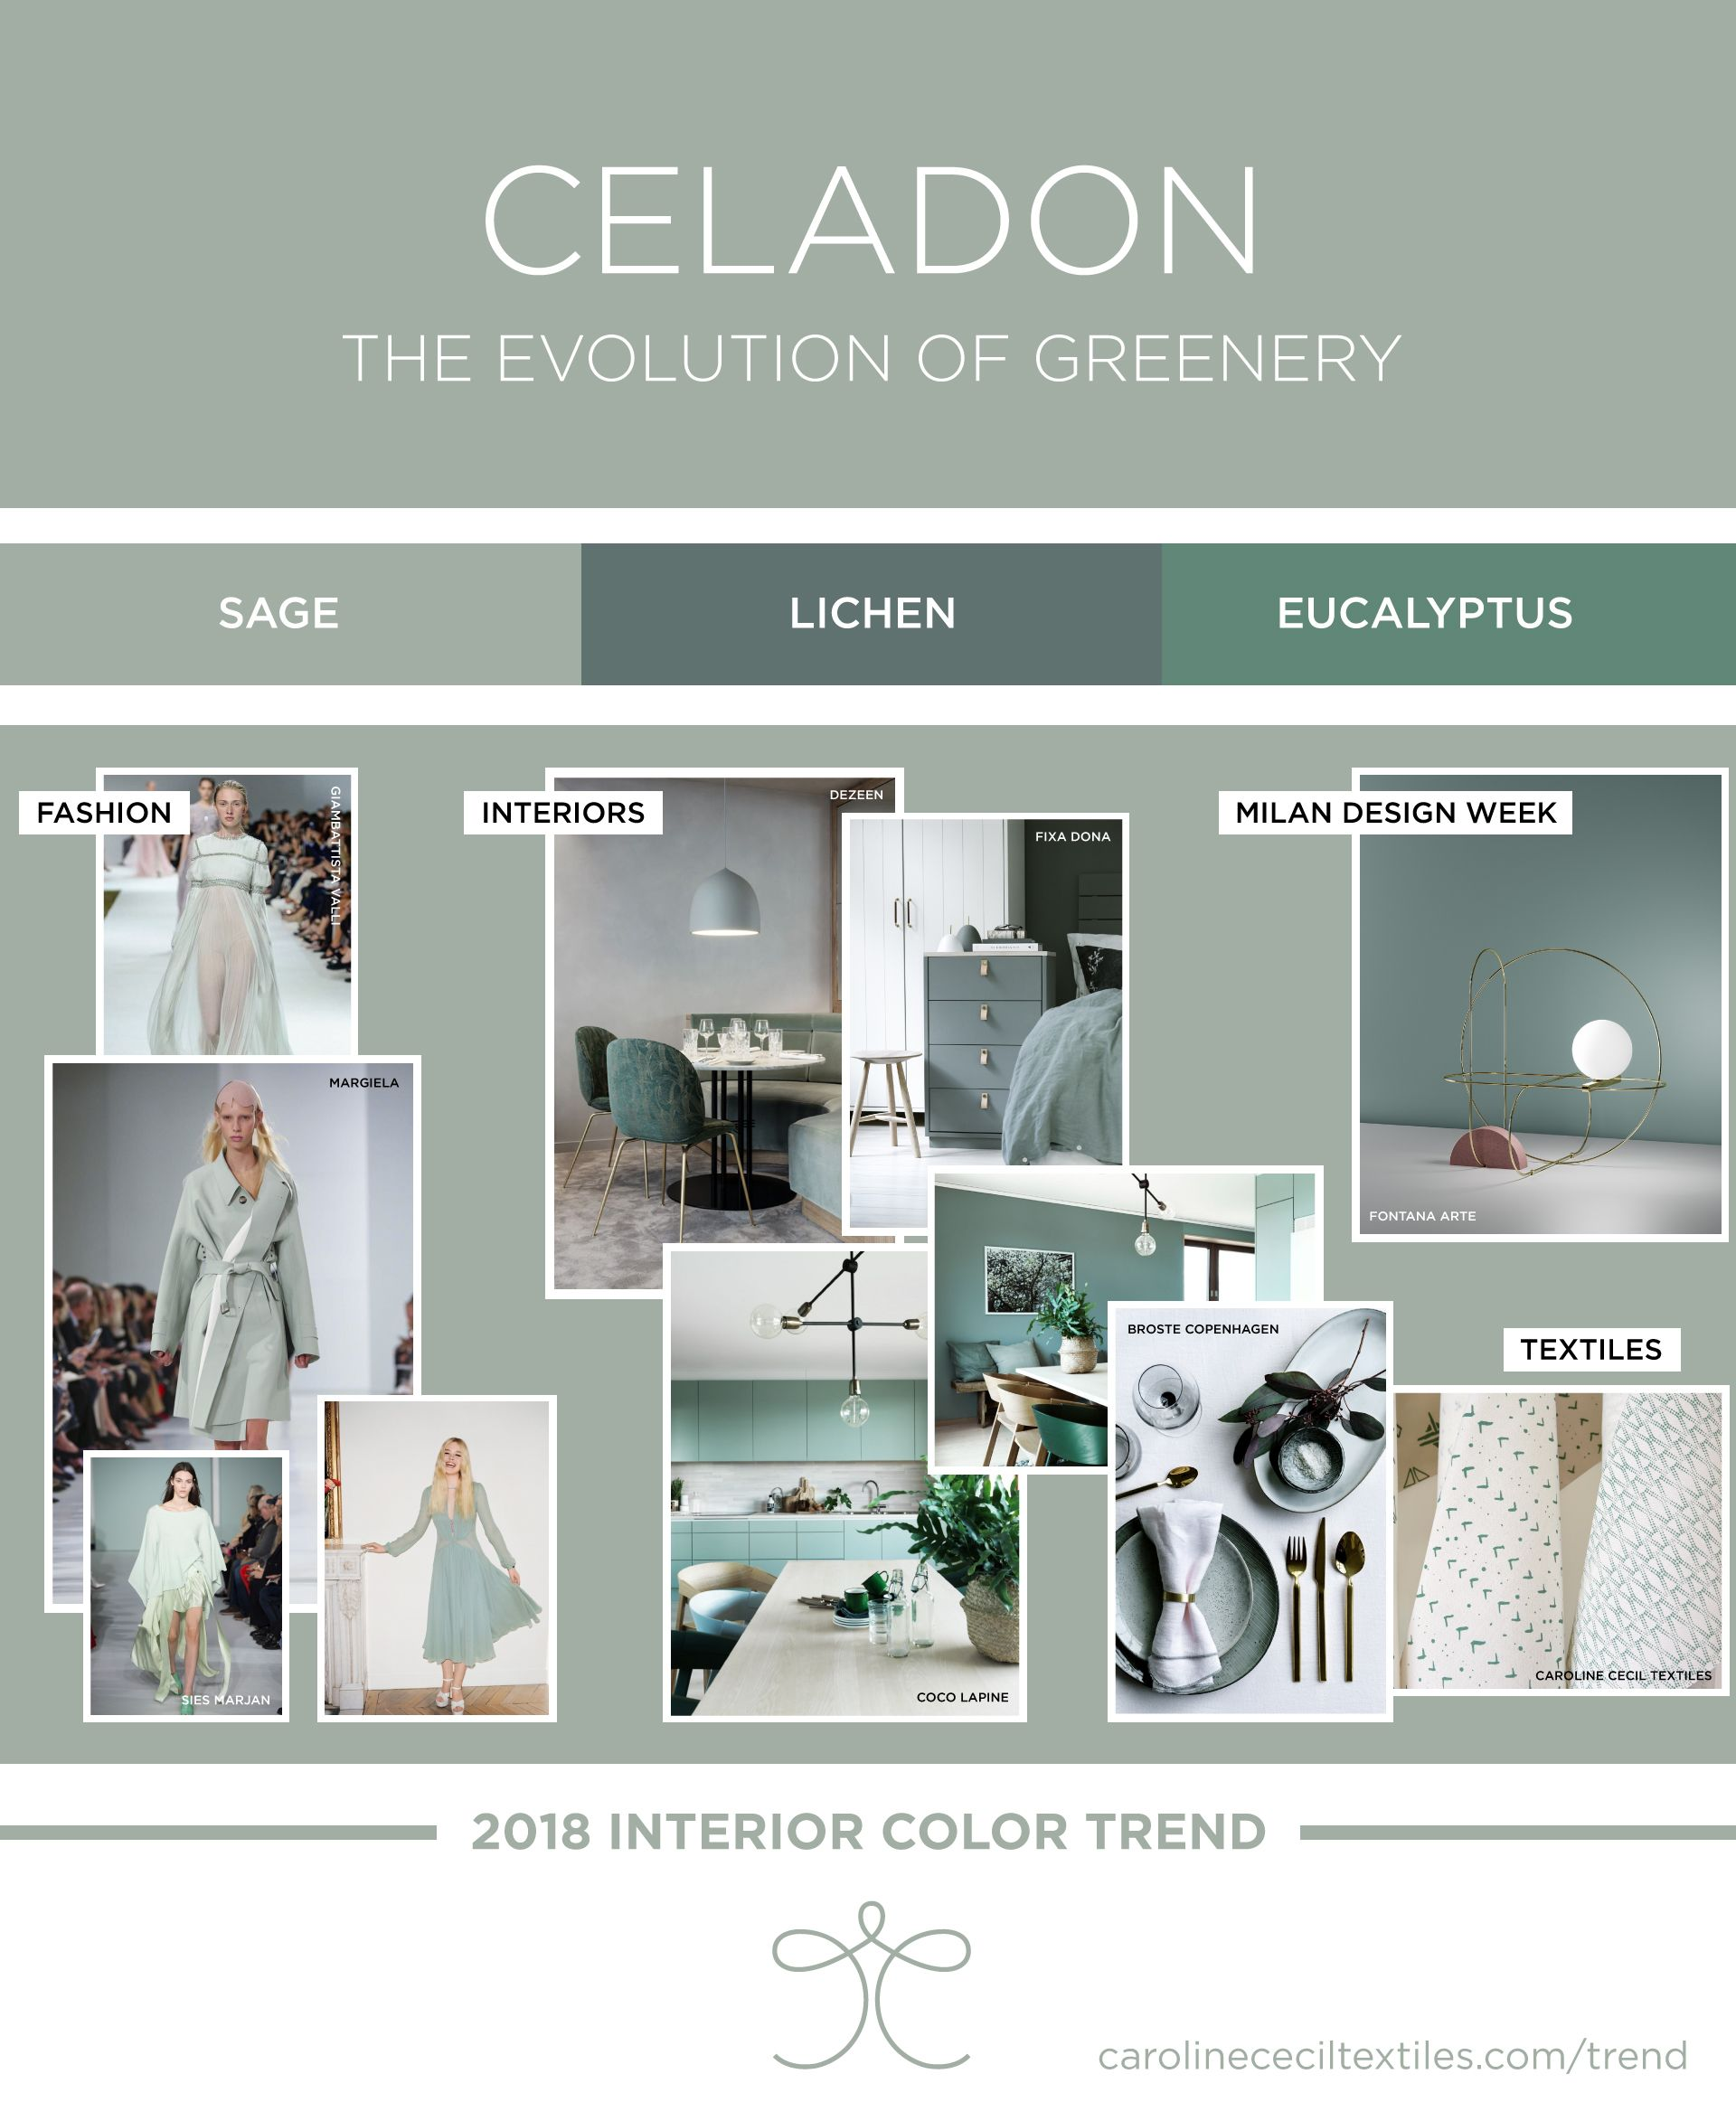 Interior color trends 2018 ss18 aw18 greenery green sage sea foam interior design paint colors home decor fashion